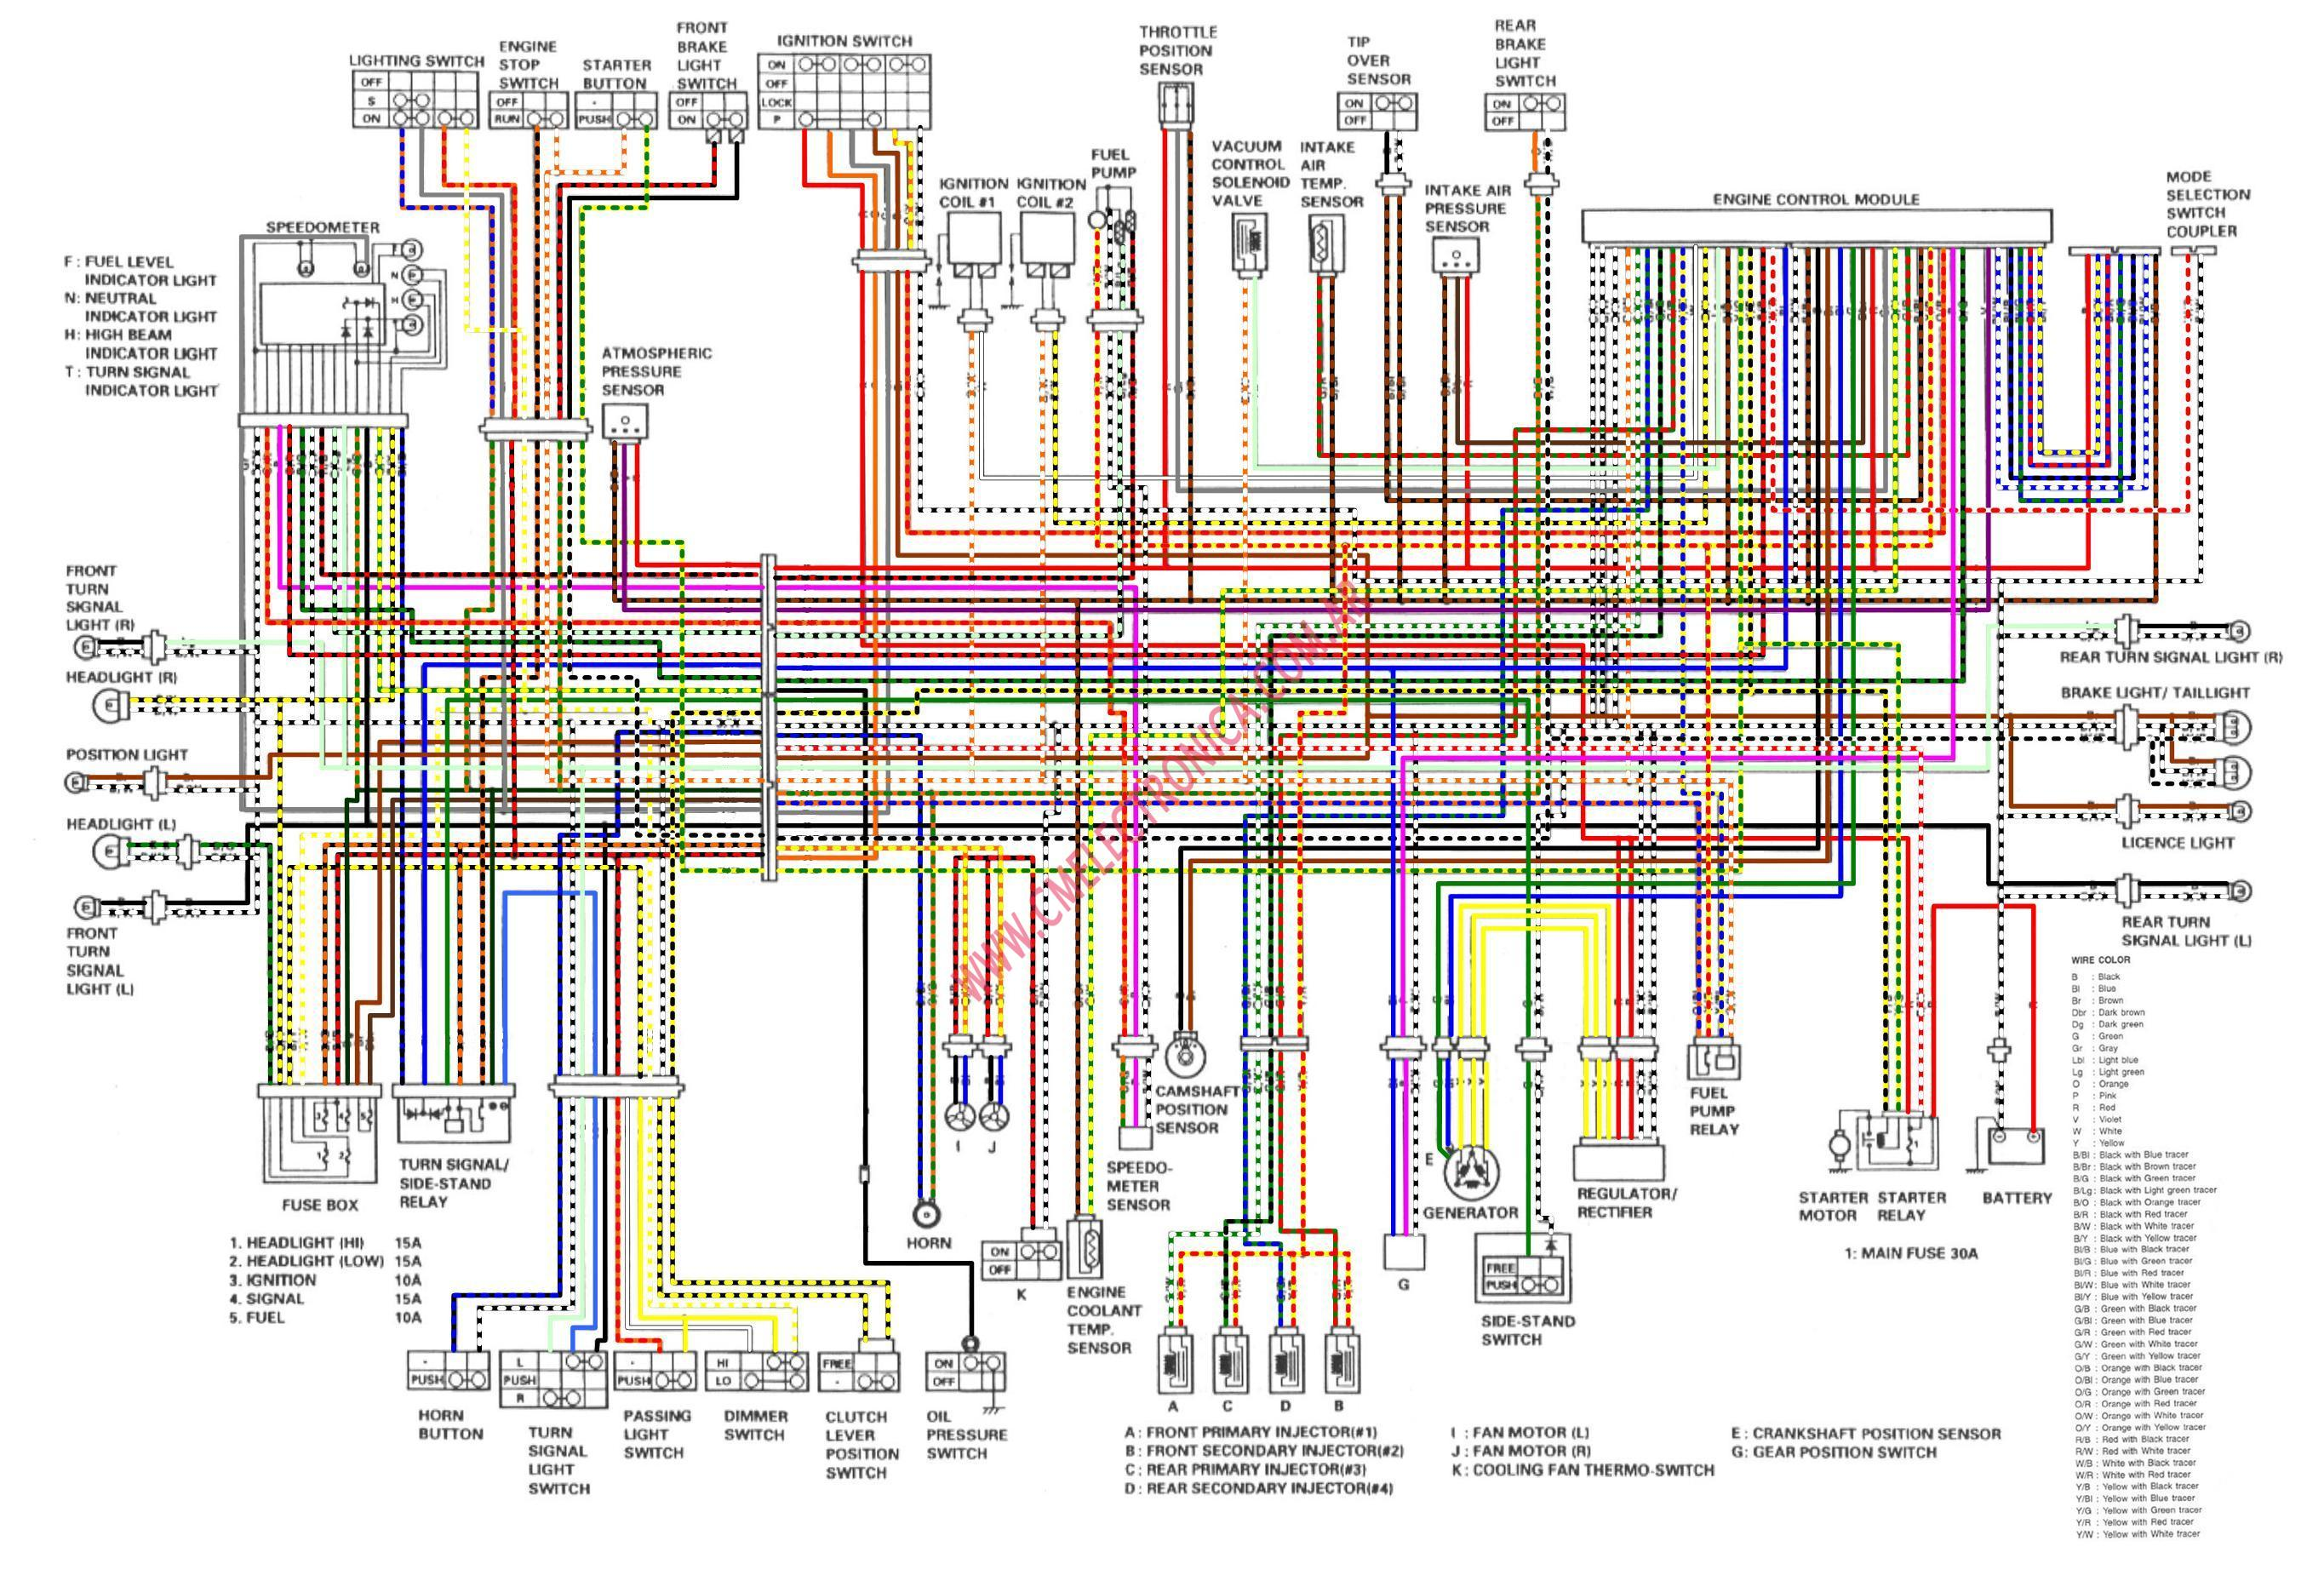 Tl1000r Wiring Diagram - basic electrical wiring theory on ignition solenoid, ignition distributor, ignition diagram, ignition cable,